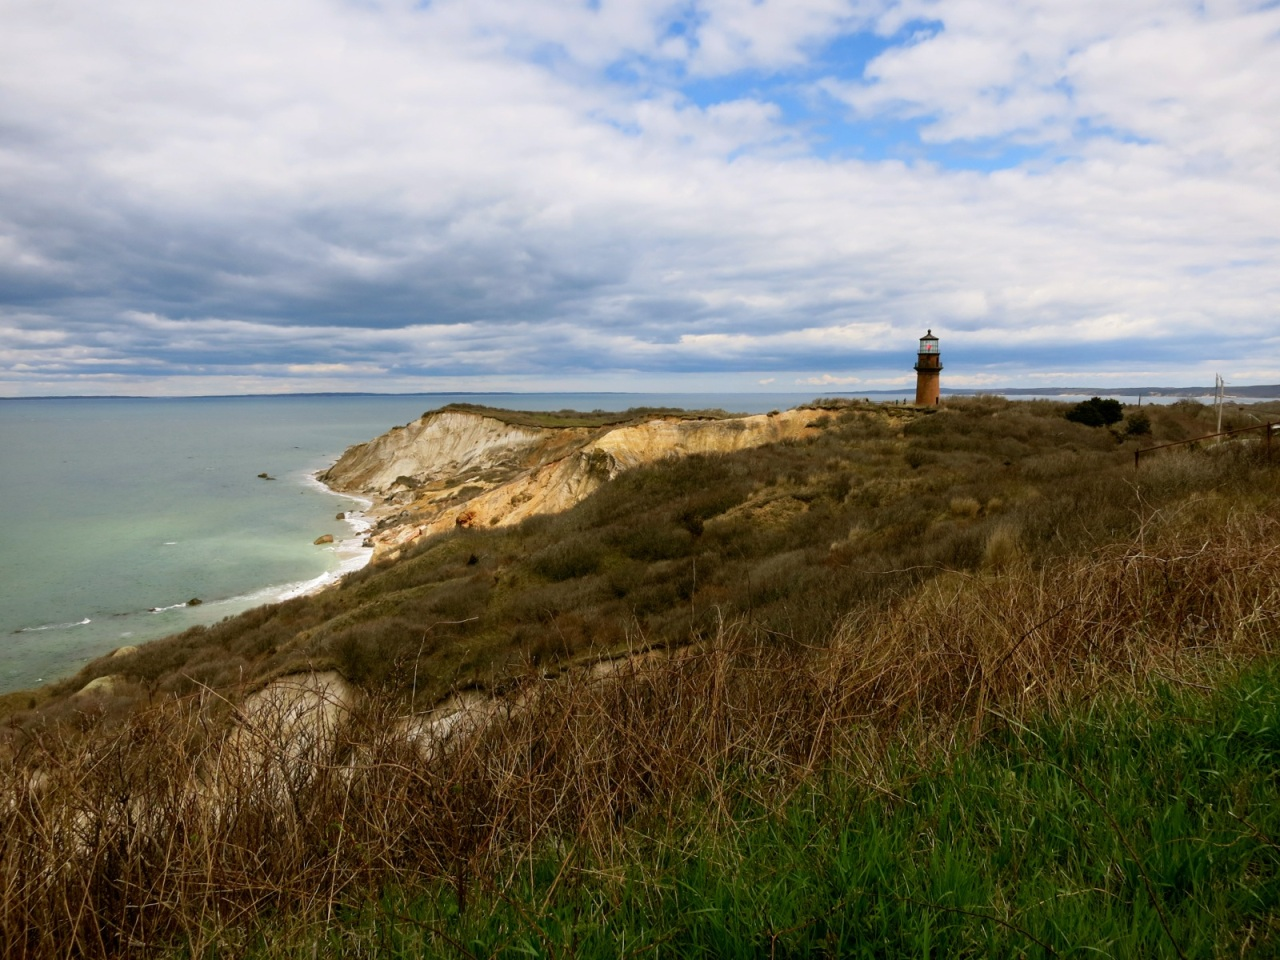 gay-head-cliffs-marthas-vineyard-ma